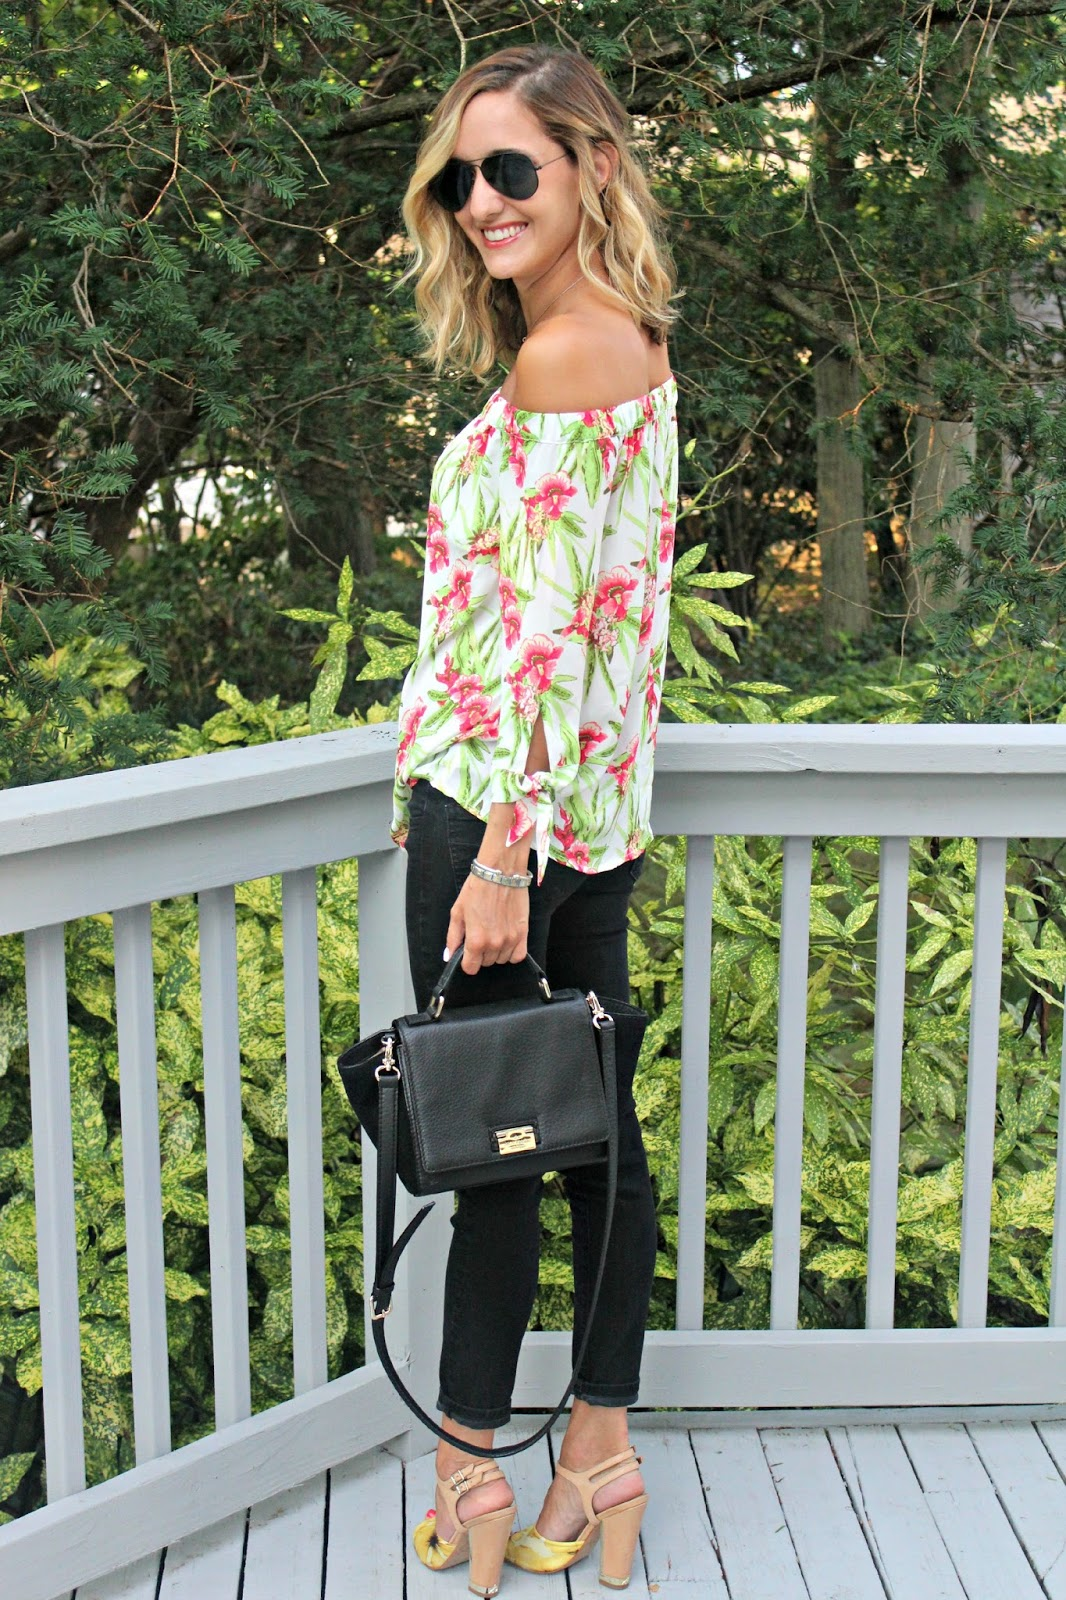 off the shoulder transitional outfit